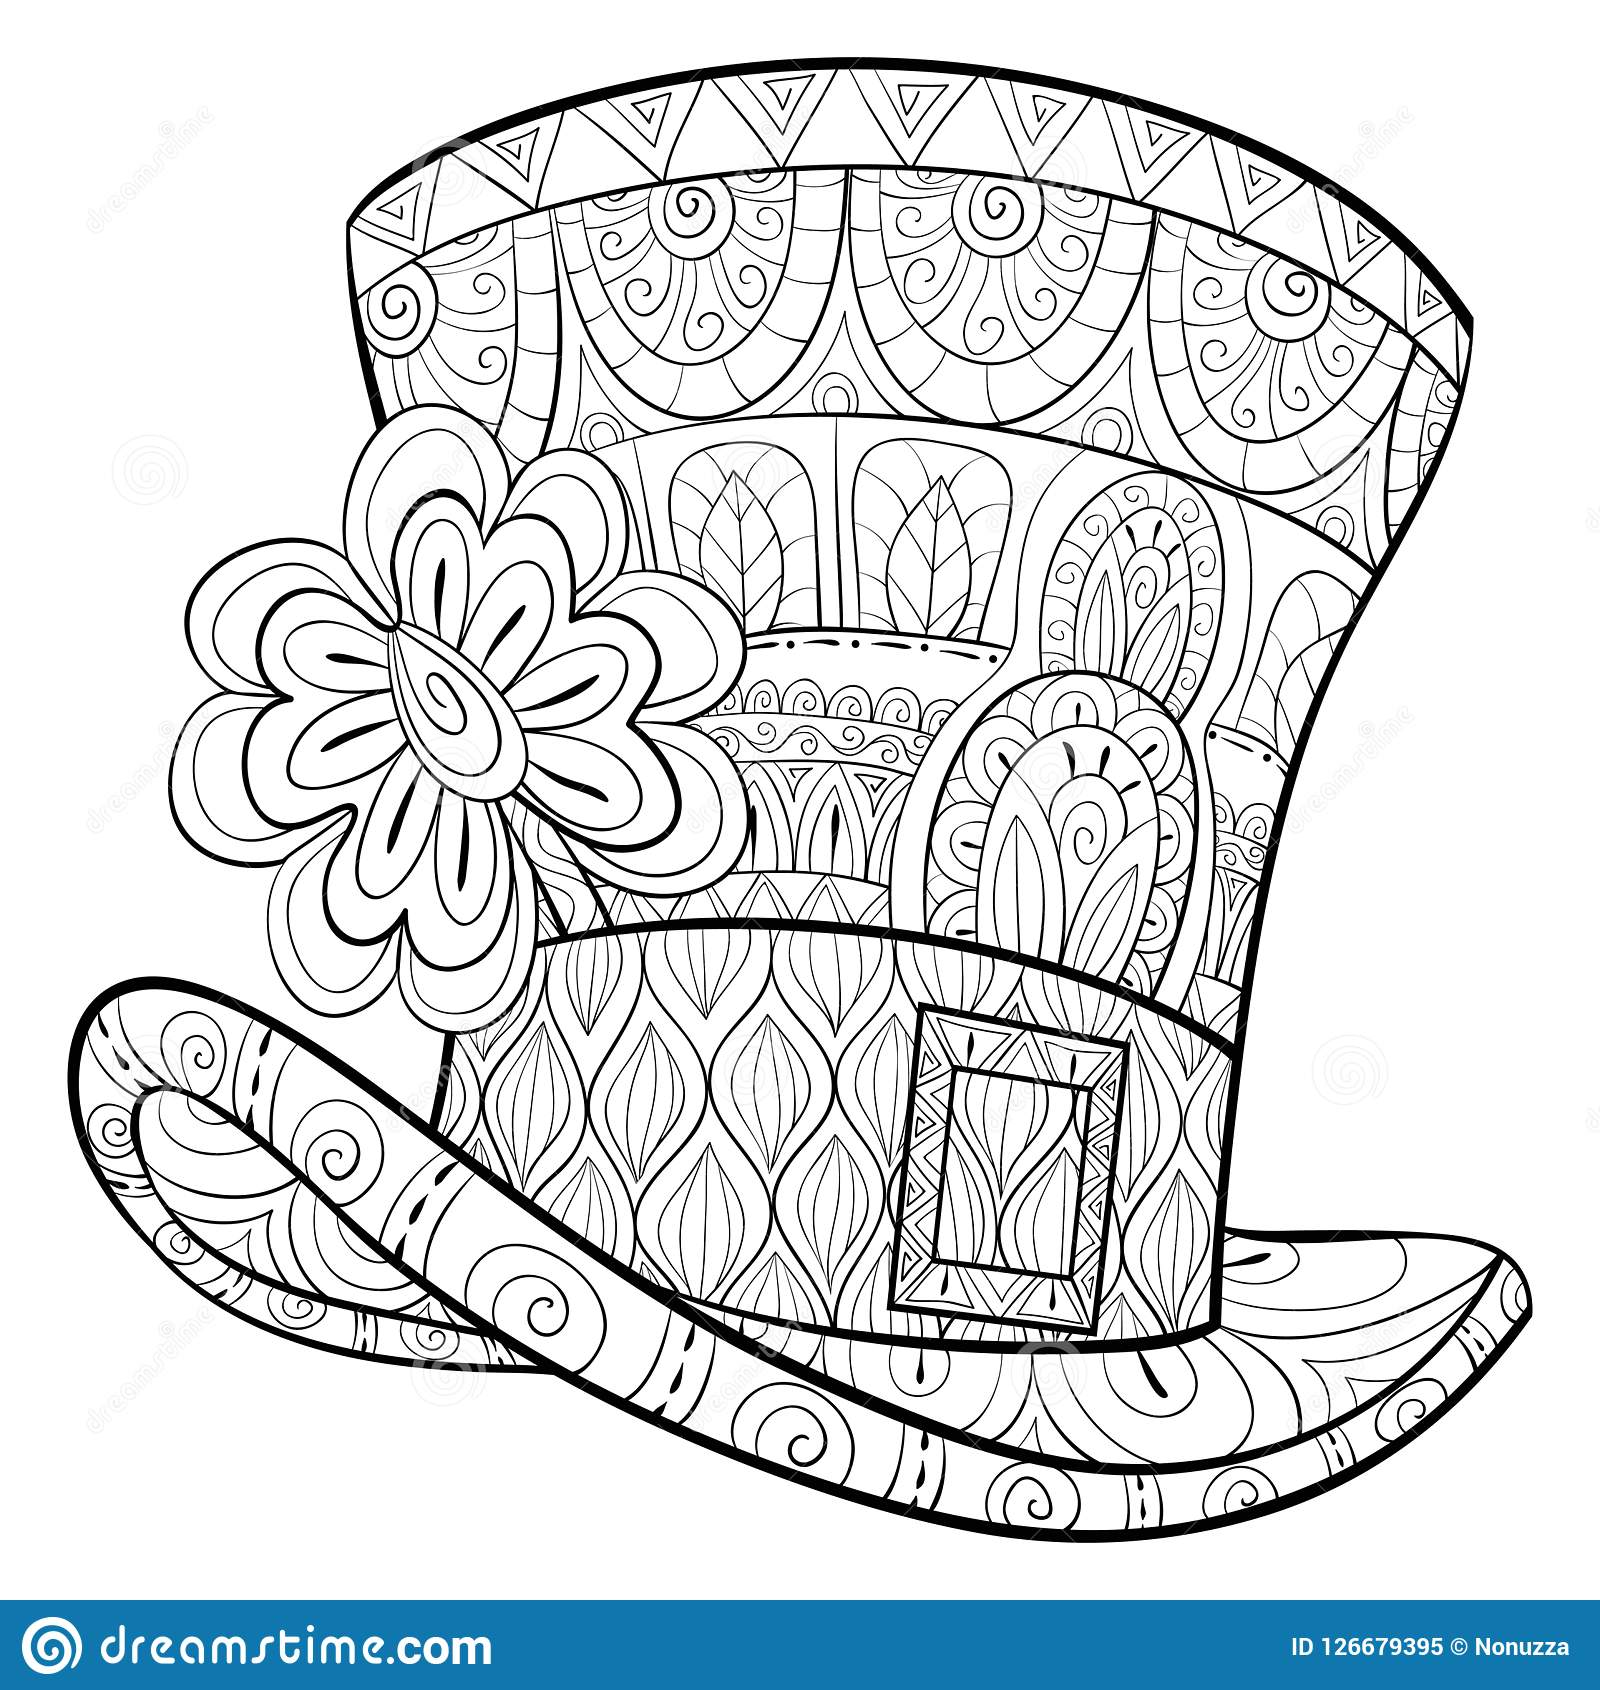 Free Printable Happy St. Patrick's Day Coloring Pages - Momma Can | 1690x1600